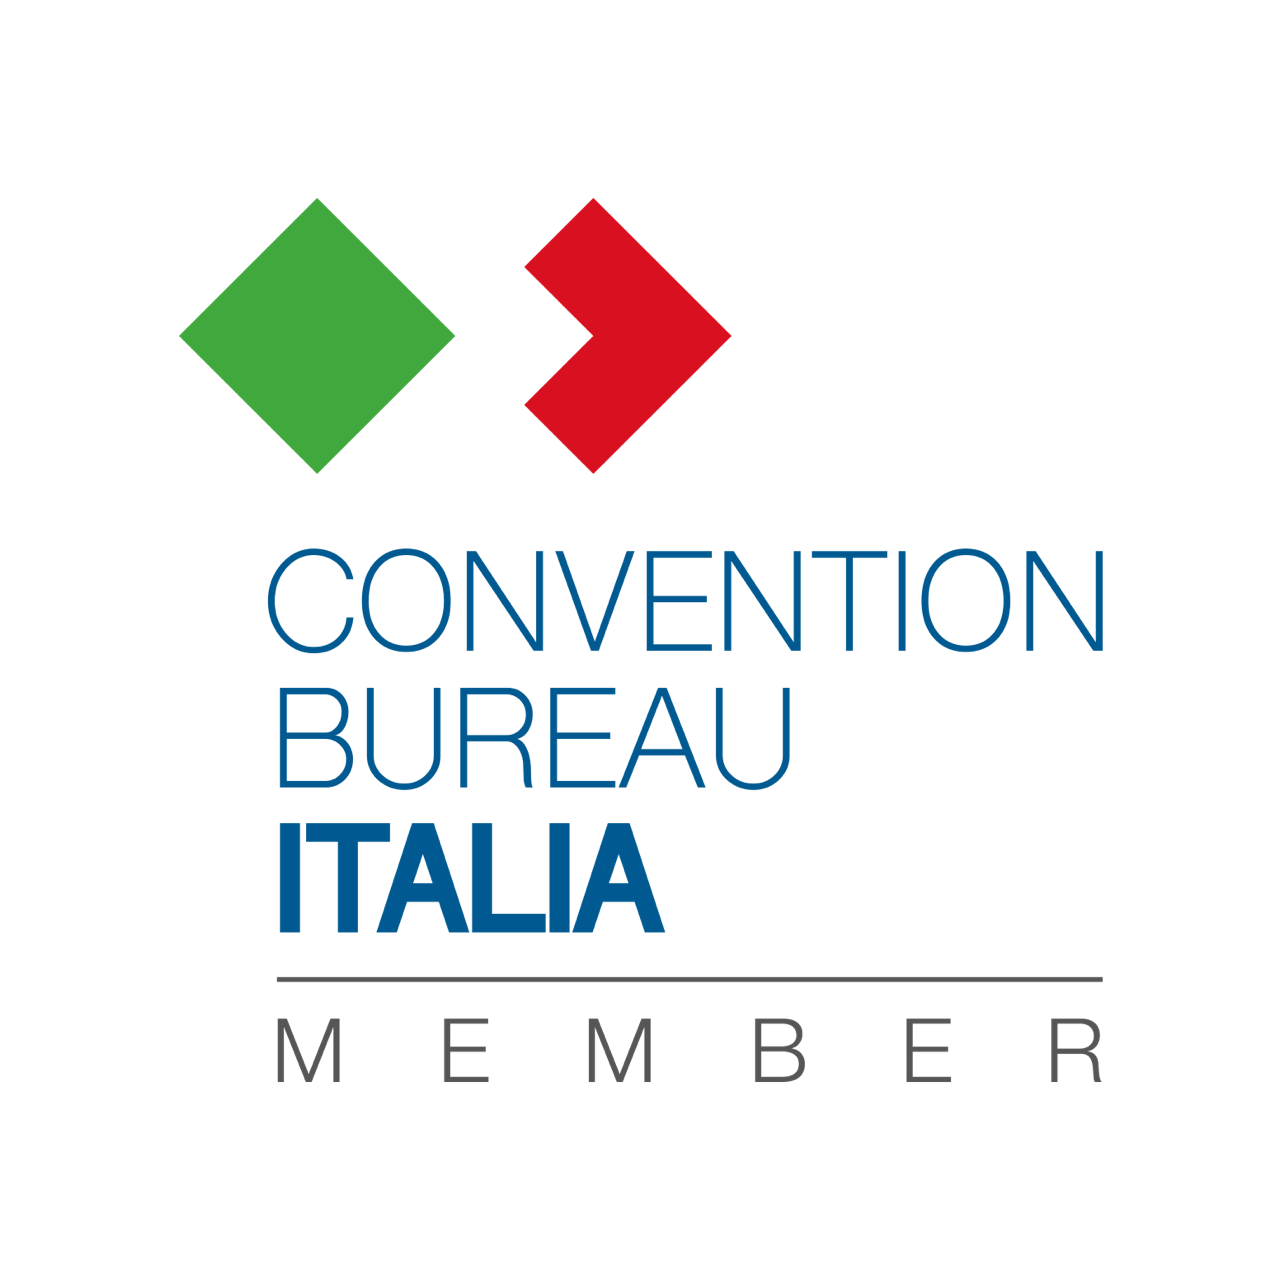 Convention Bureau Italia